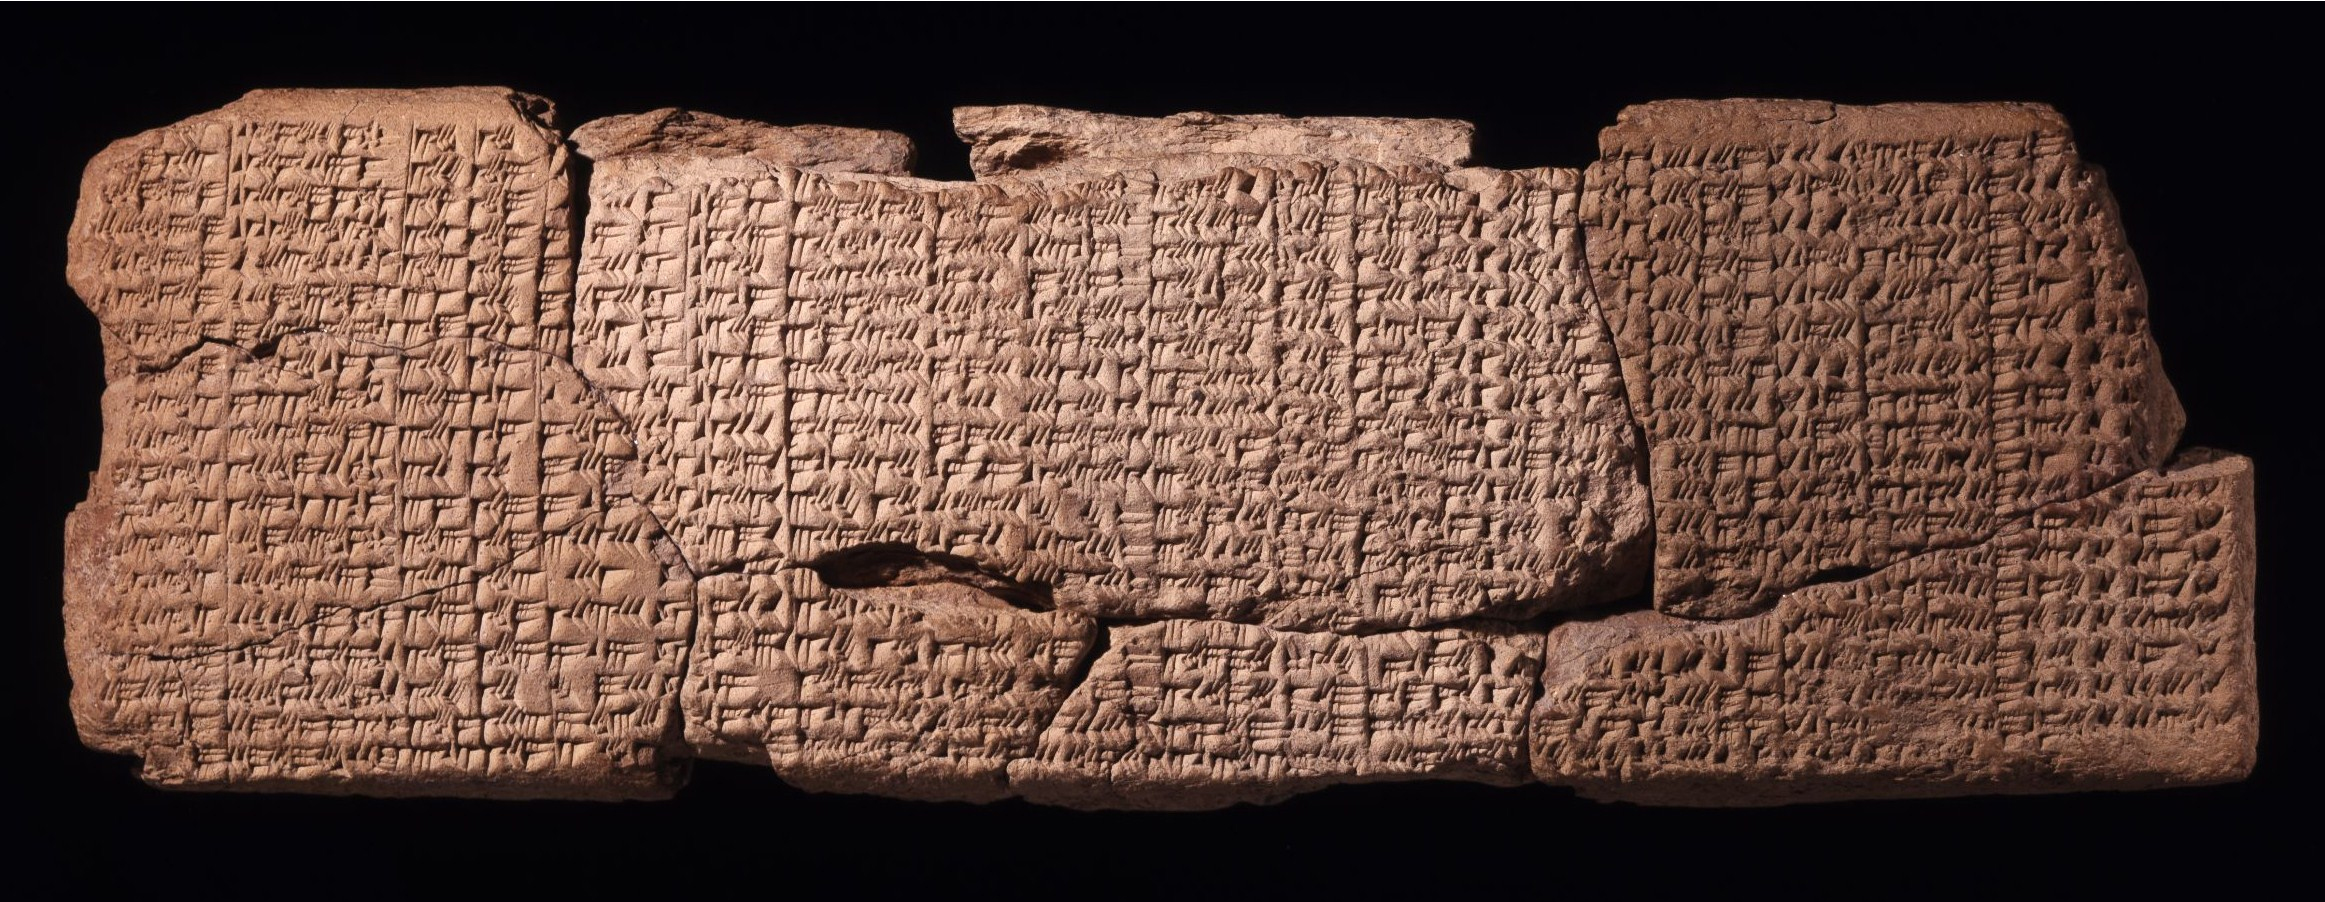 landscape image of several ancient clay tablets which are covered in Babylonian cuneiform writing